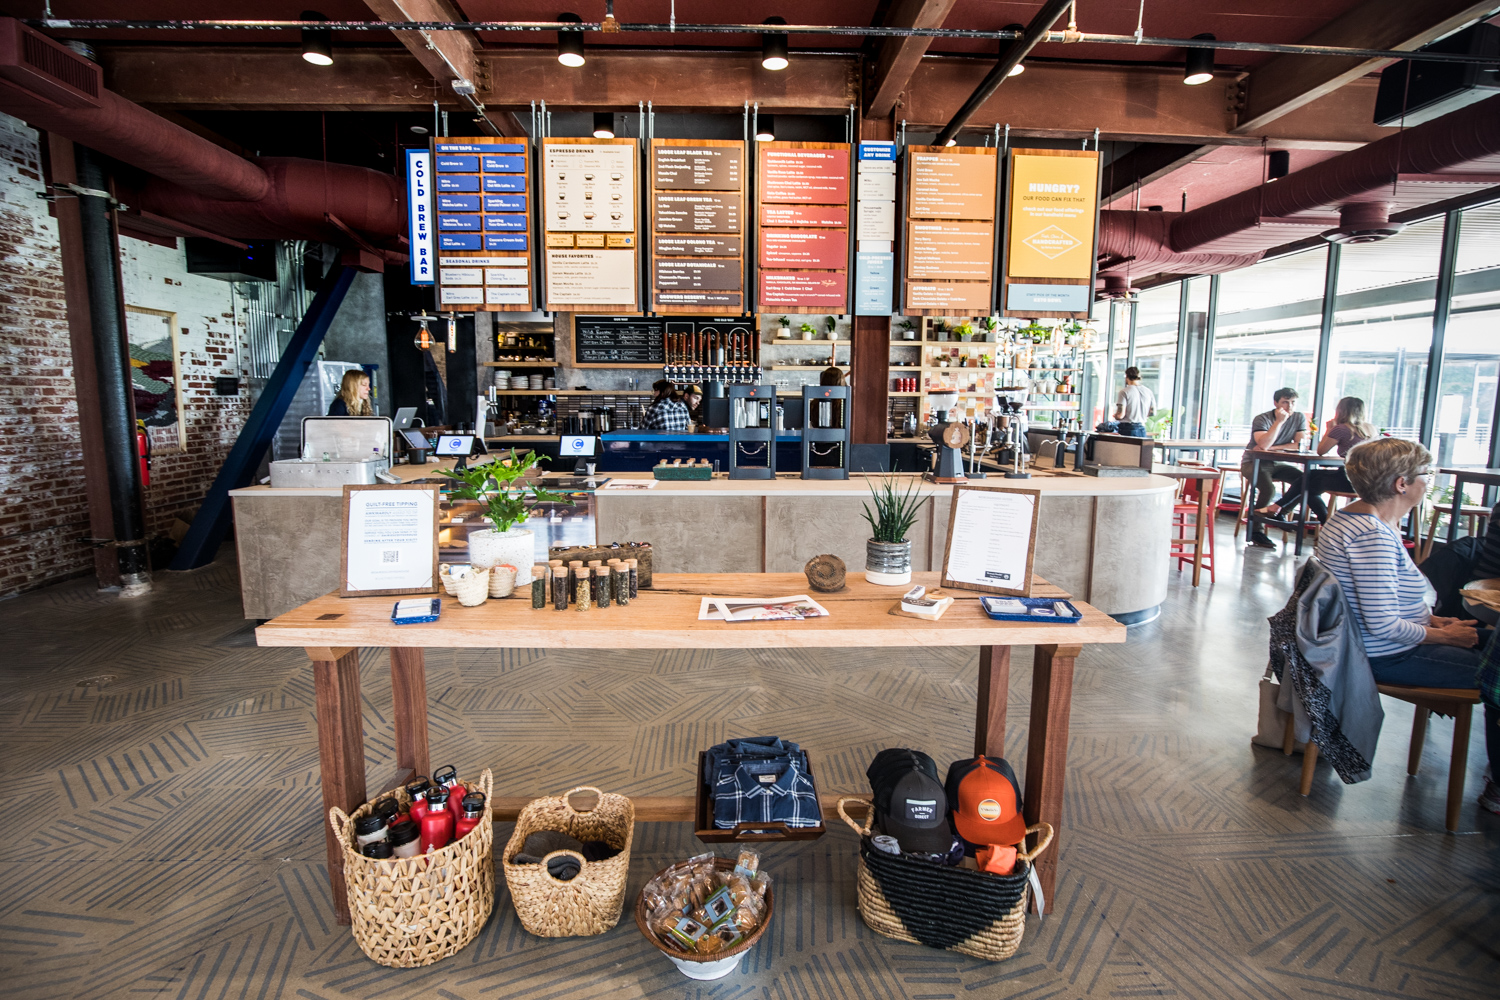 Wide angle view of the interior at Cold Brew Bar.